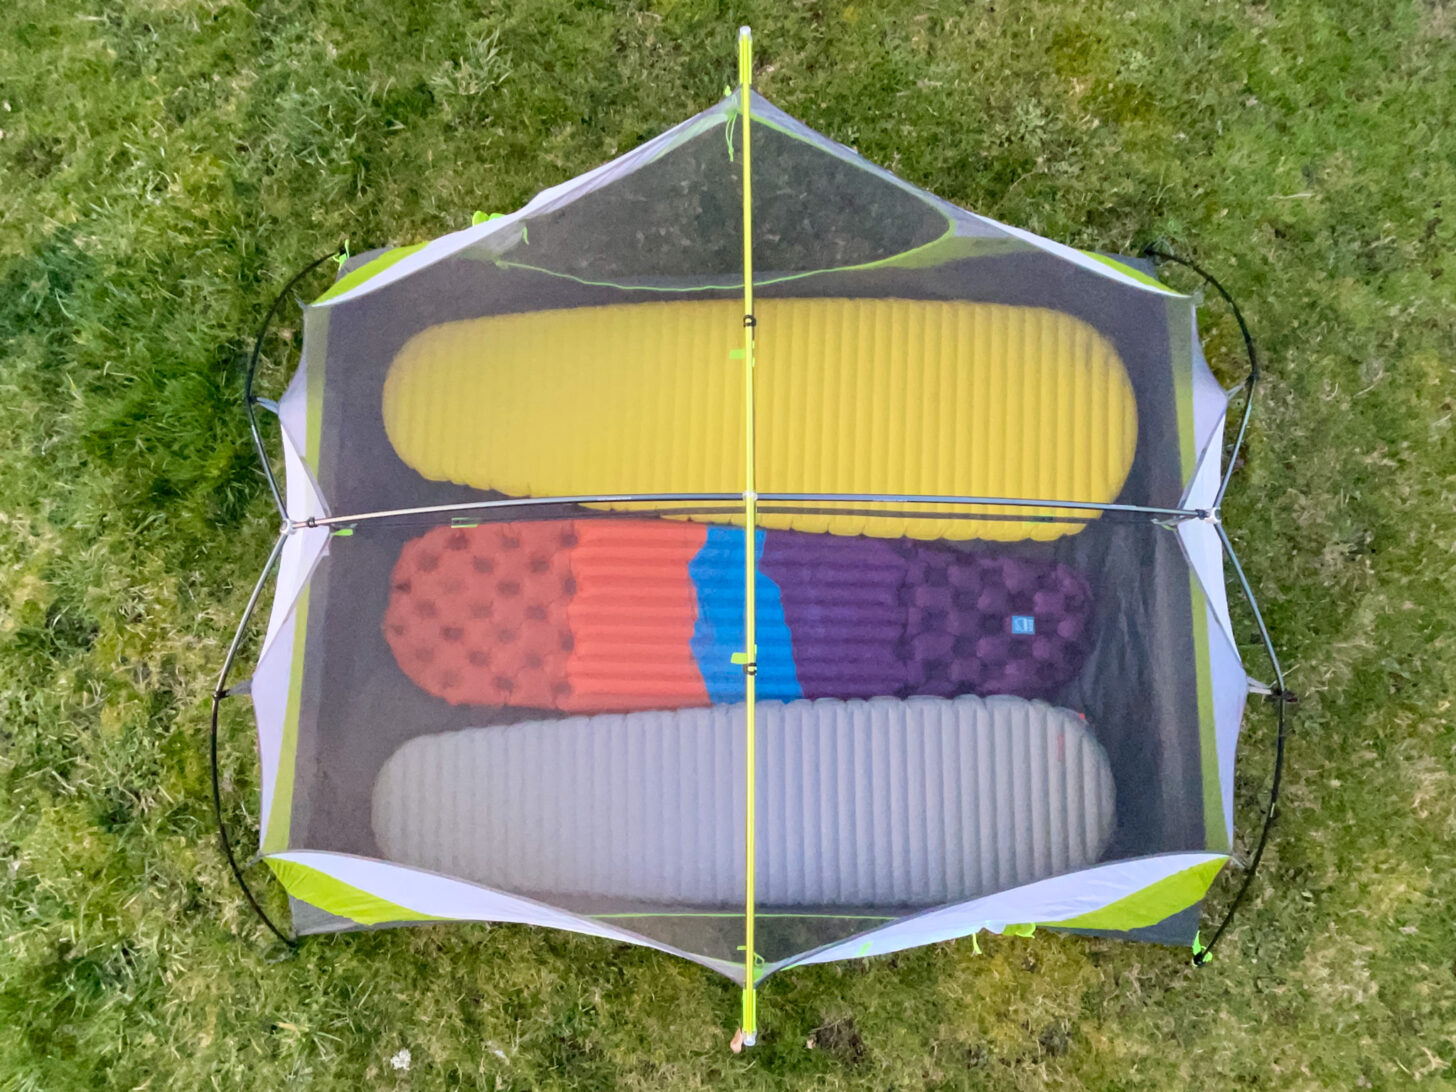 an overhead shot showing how tightly three pads fit inside the shelter.